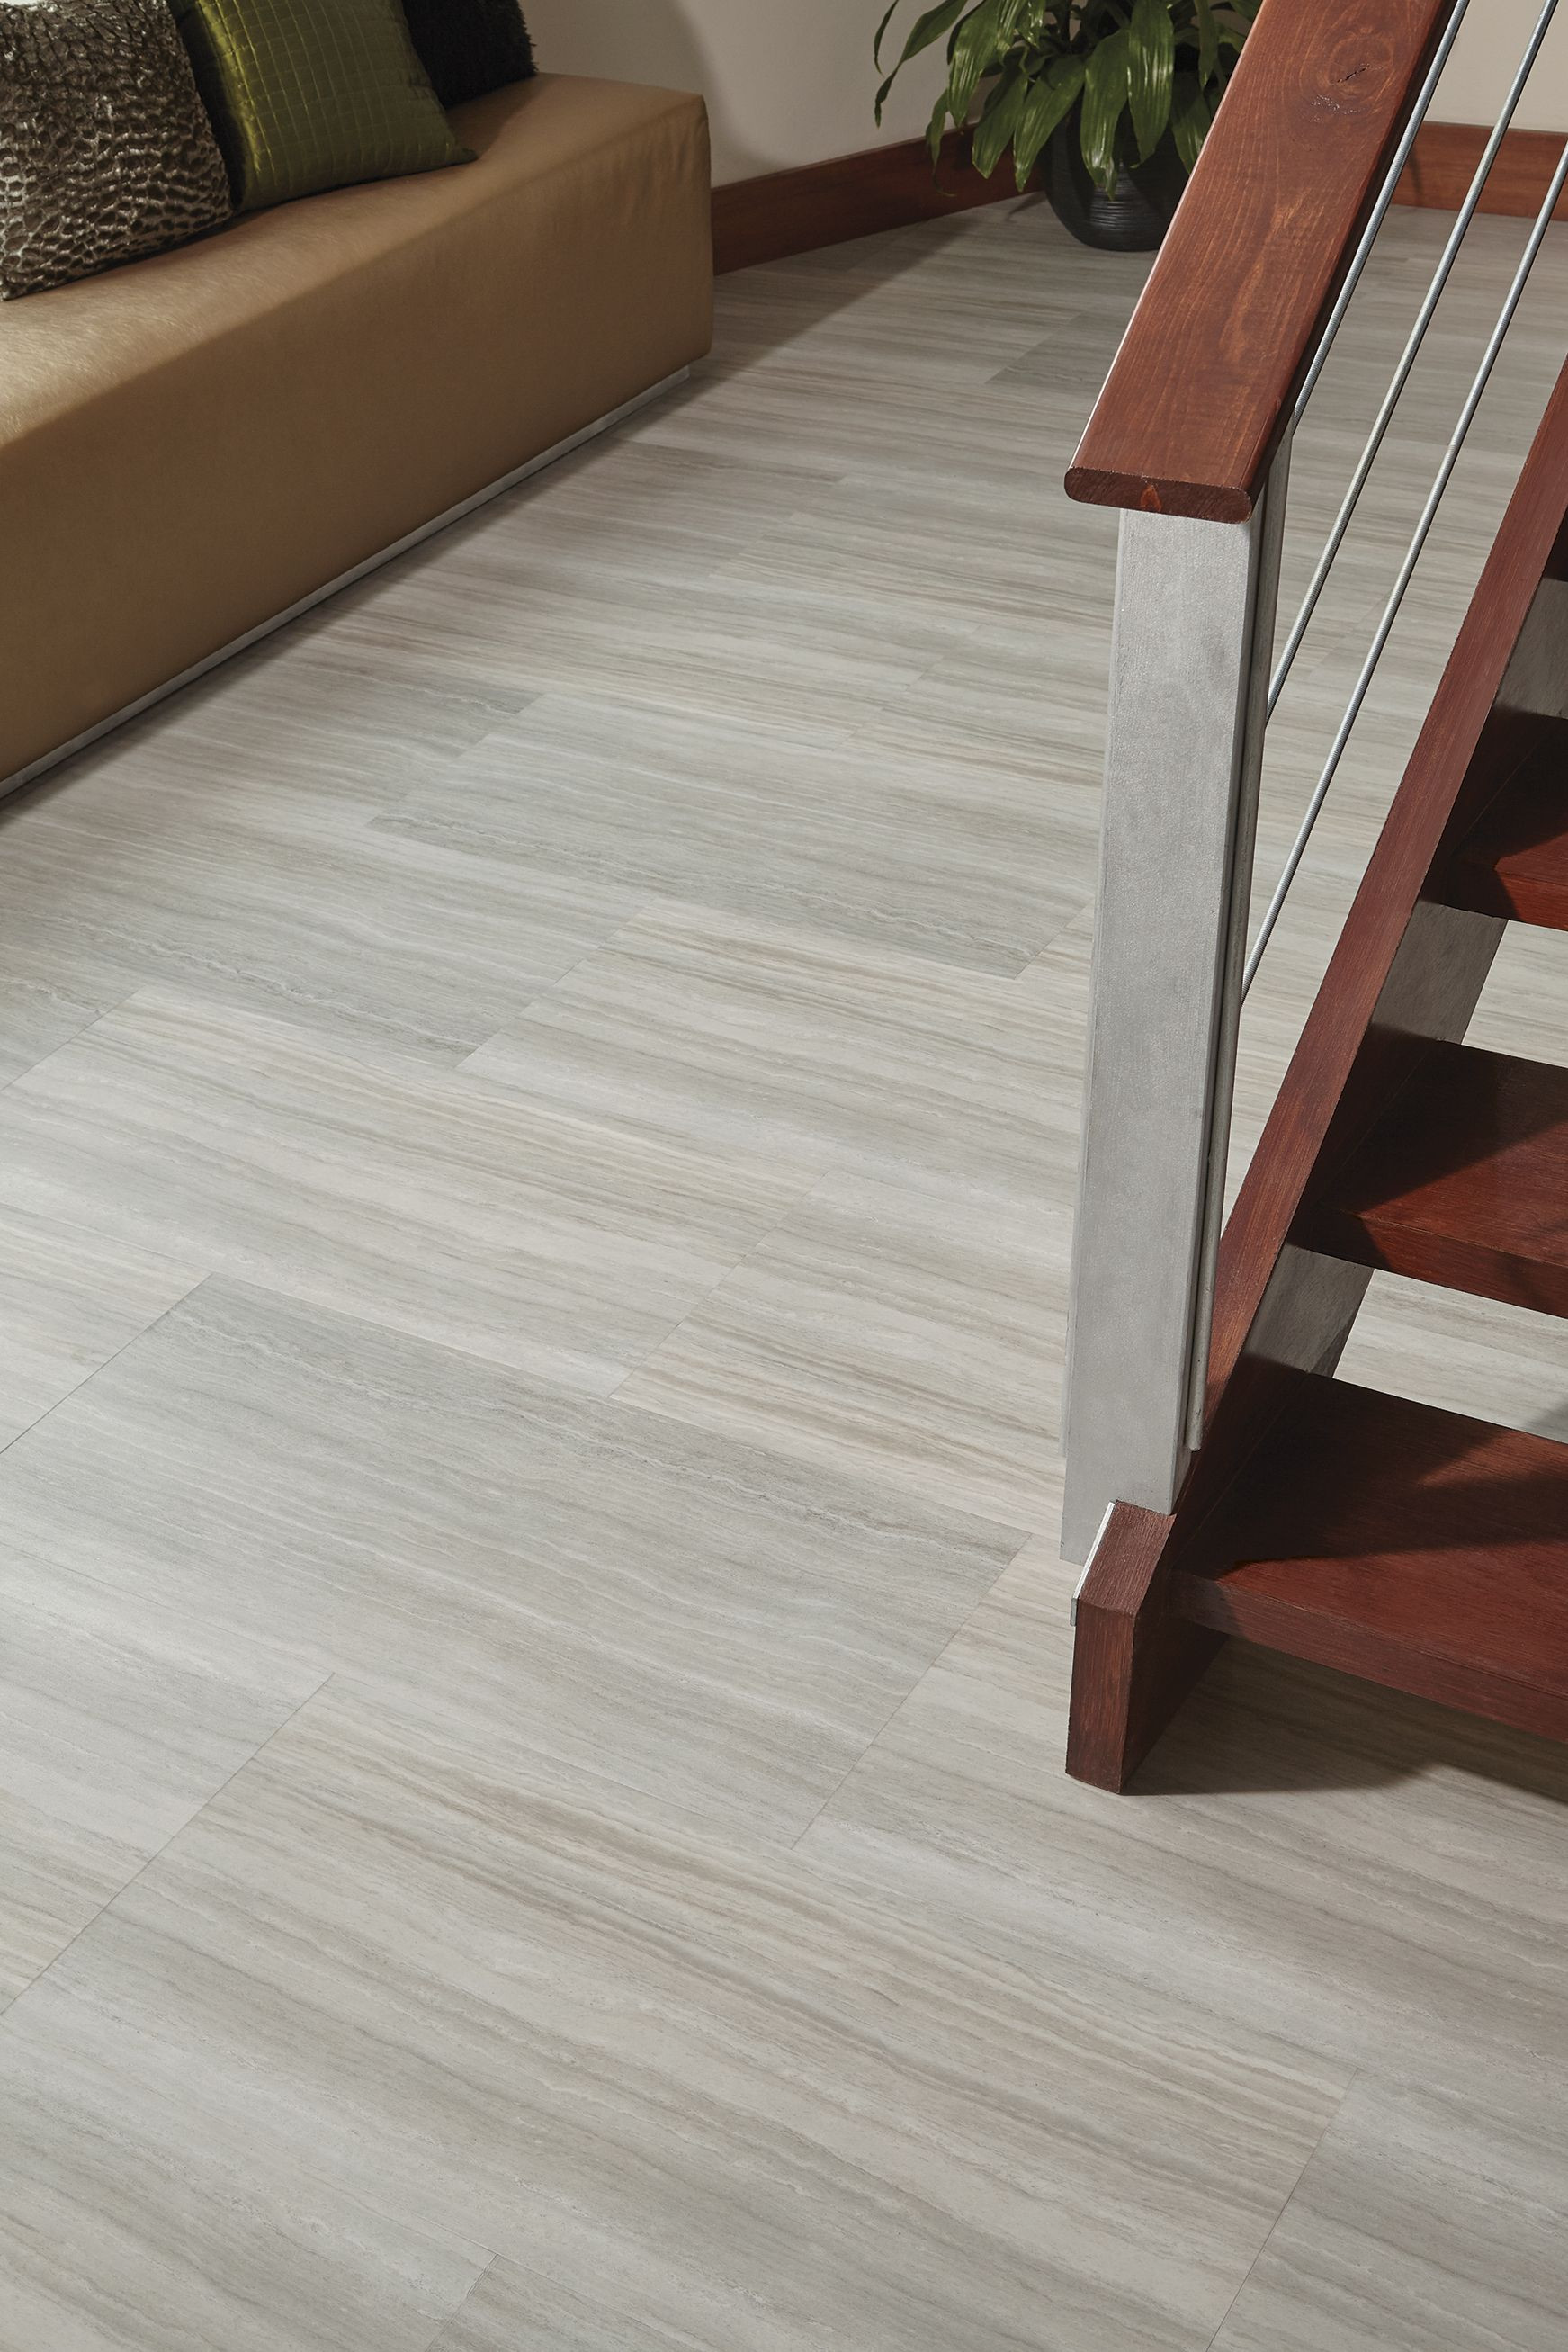 floating hardwood floor over tile of stainmastera manor travertine 5g floating plank 17 74x 35 74 5 0mm with regard to stainmastera manor travertine 5g floating plank 17 74x 35 74 5 0mm thick